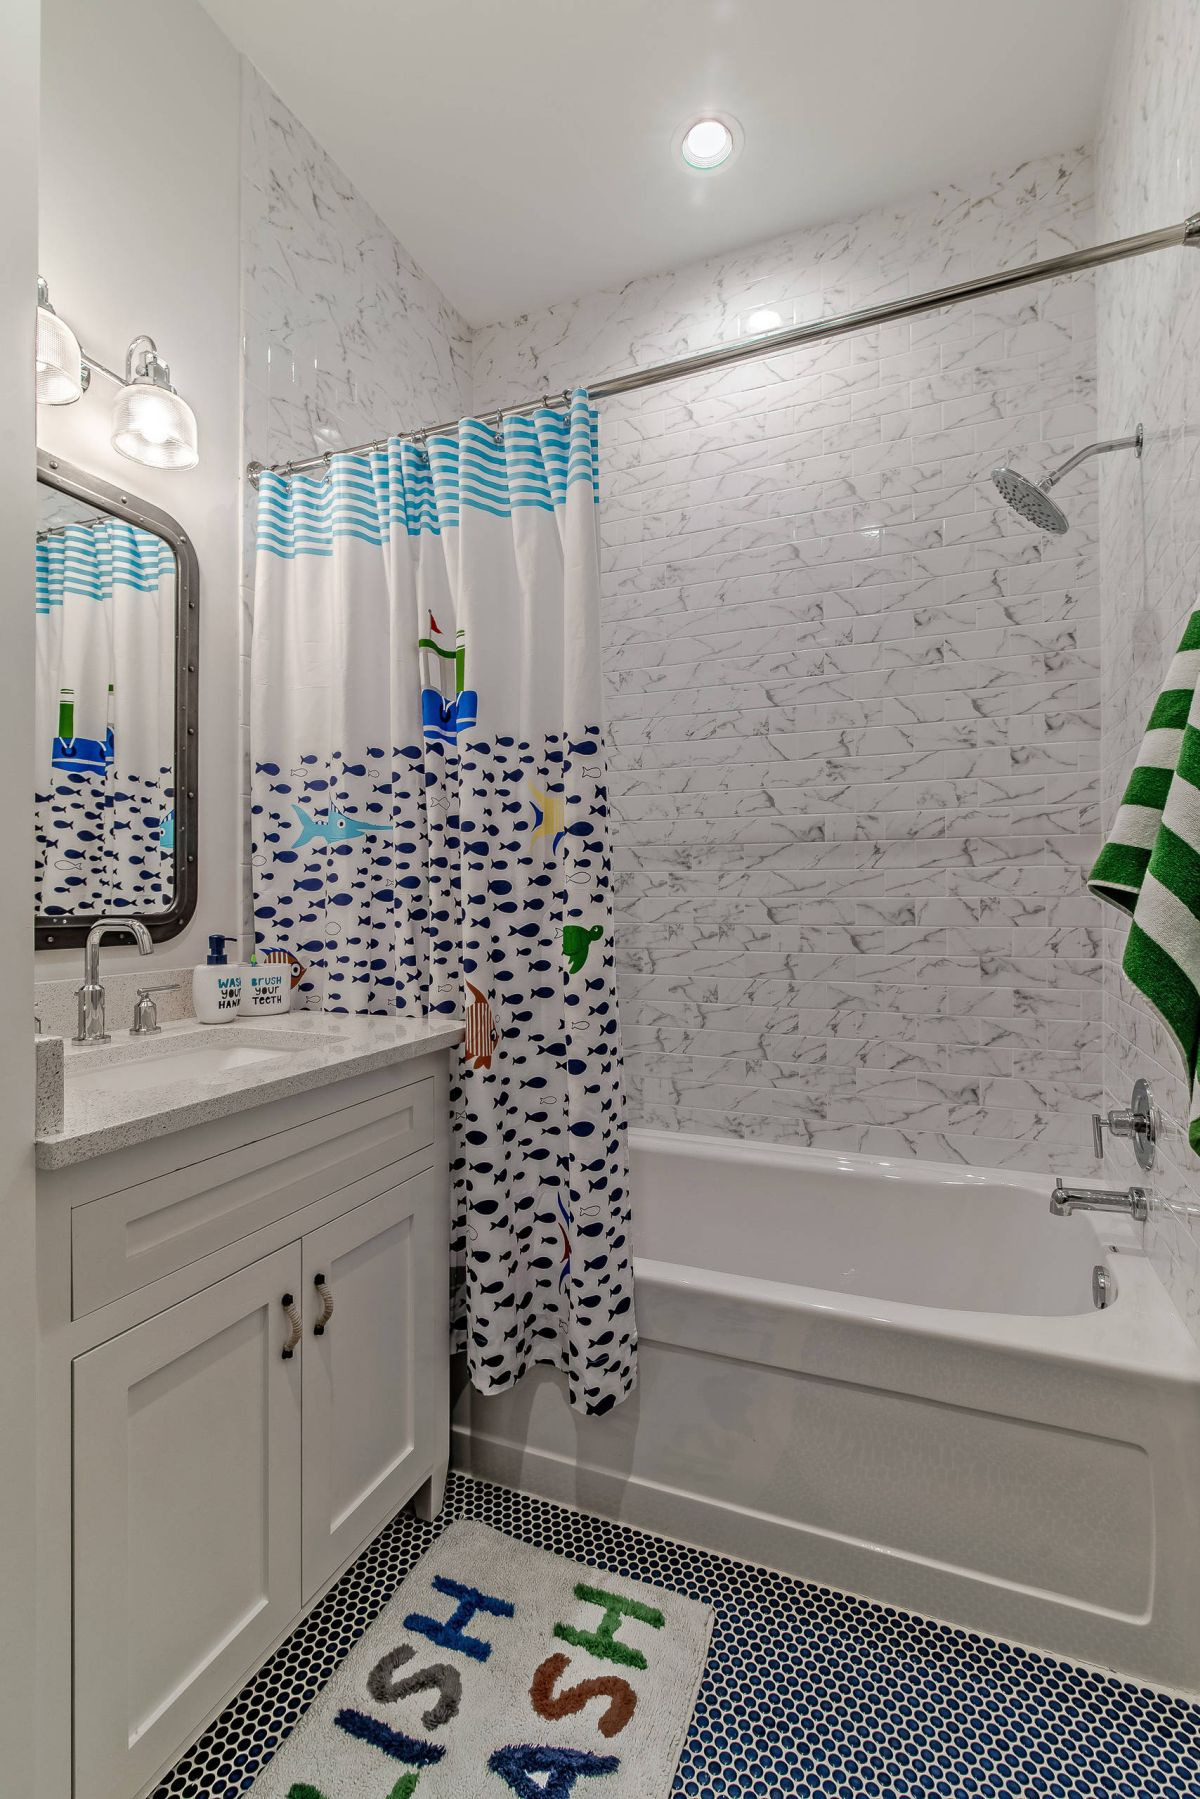 Kids Bathroom Decoration Awesome 12 Tips for the Best Kids Bathroom Decor